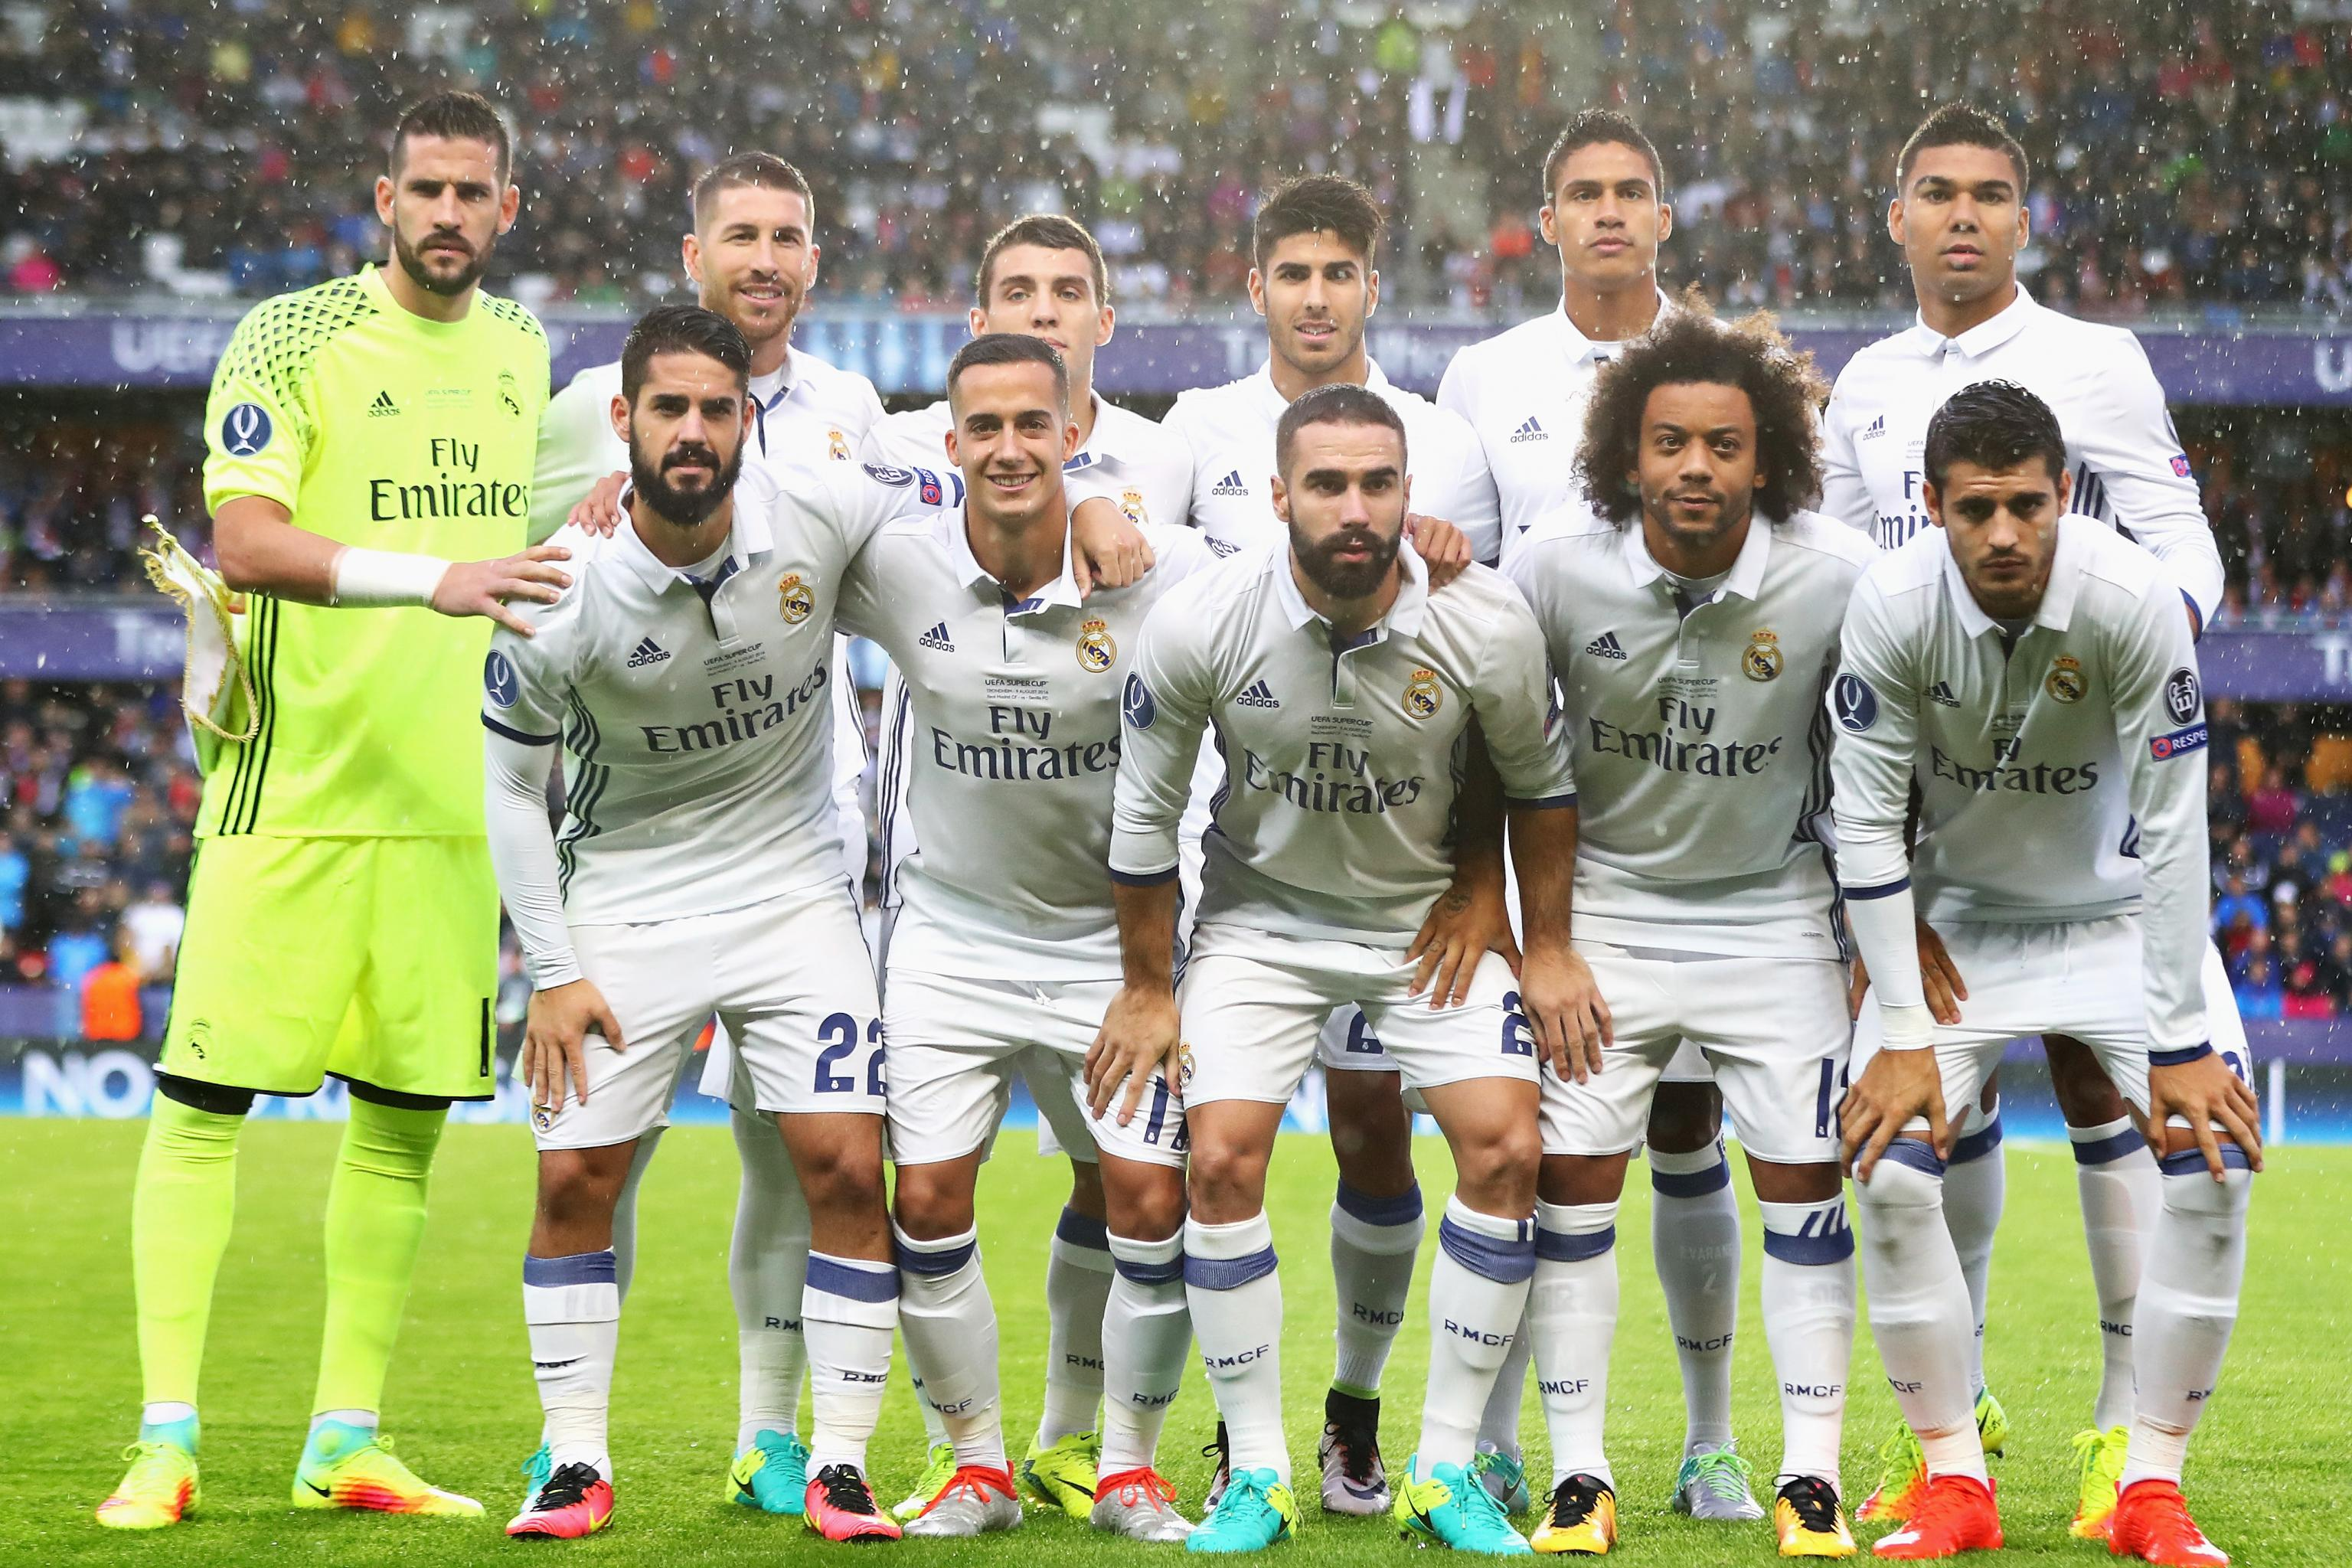 Real Madrid Vs Sevilla Goals And Highlights From 2016 European Super Cup Bleacher Report Latest News Videos And Highlights